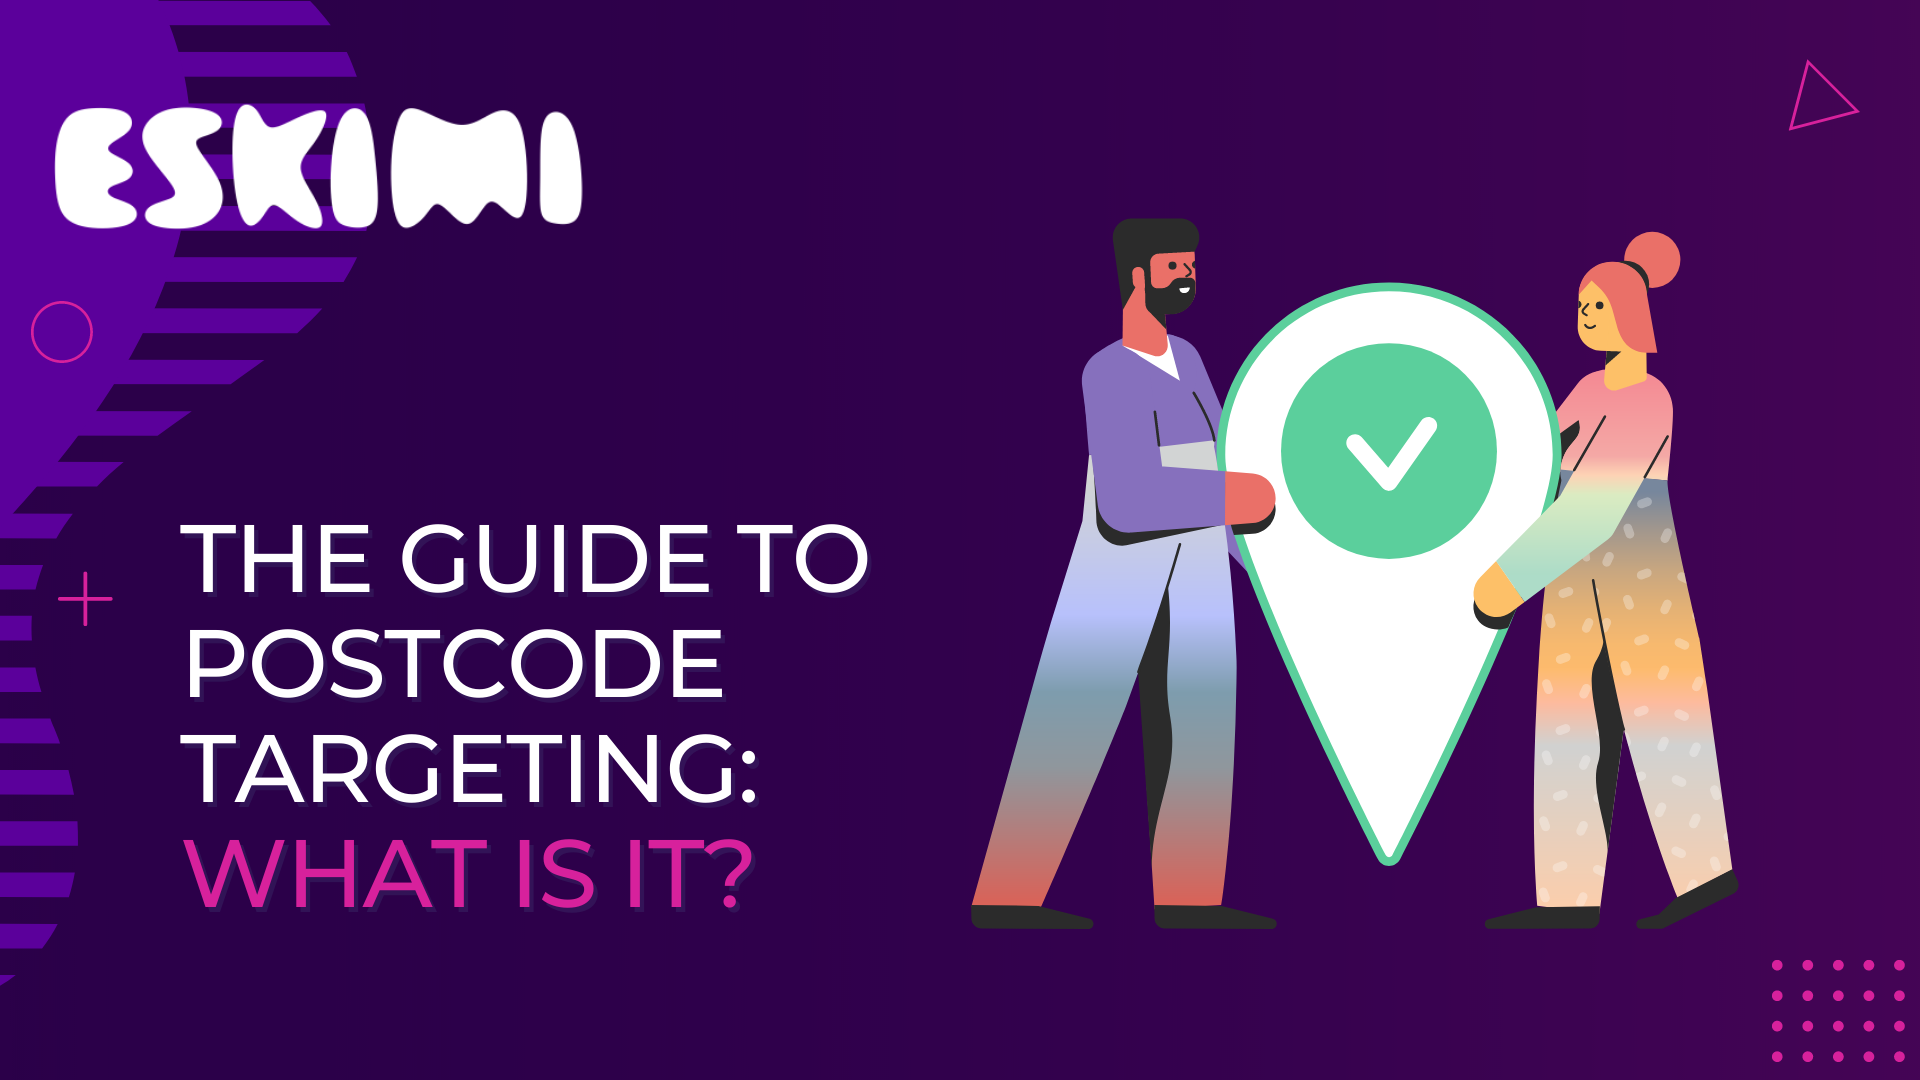 The Guide to Postcode Targeting: What Is It?